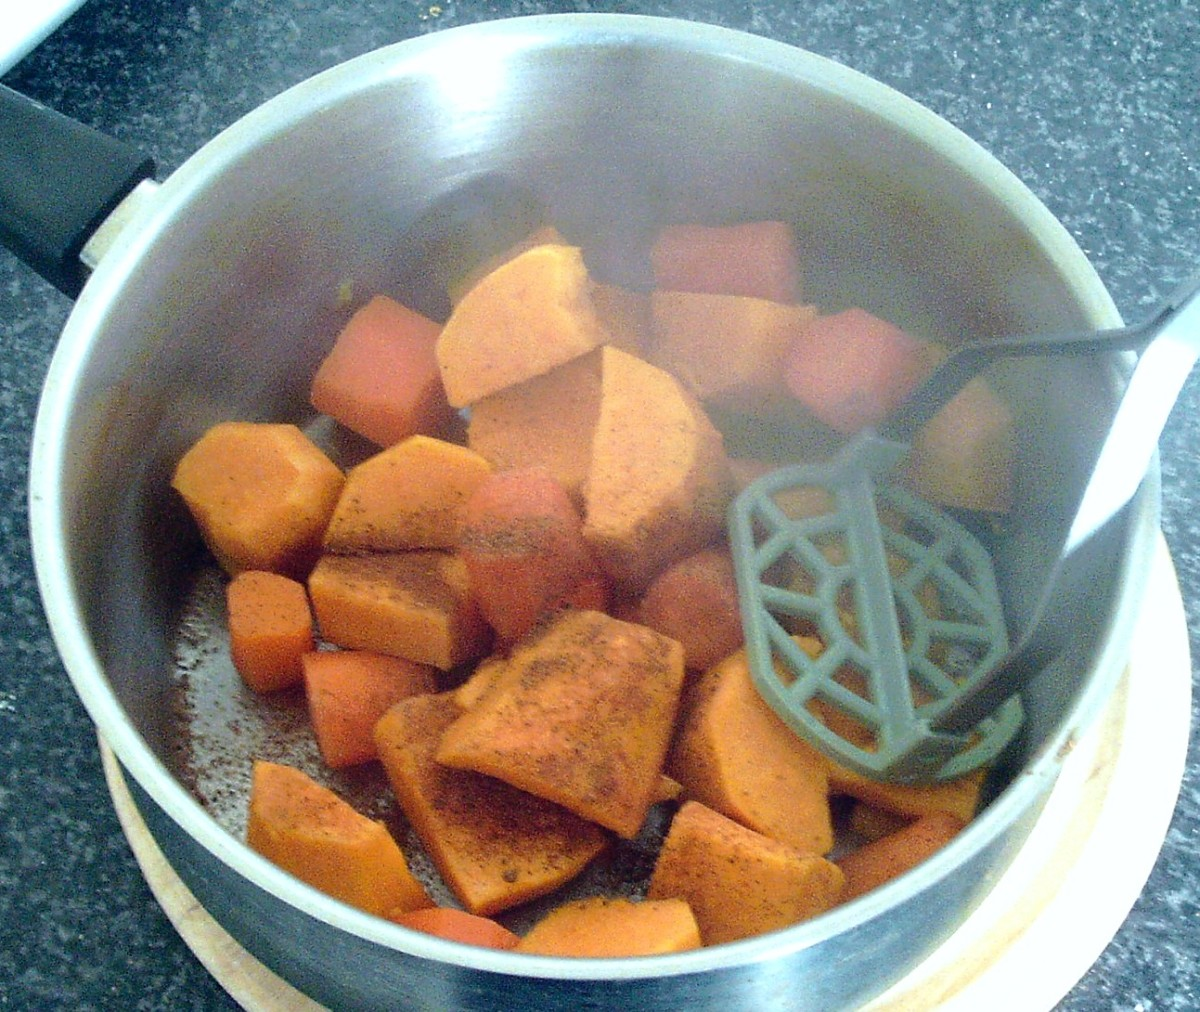 Mashing sweet potatoes and carrot